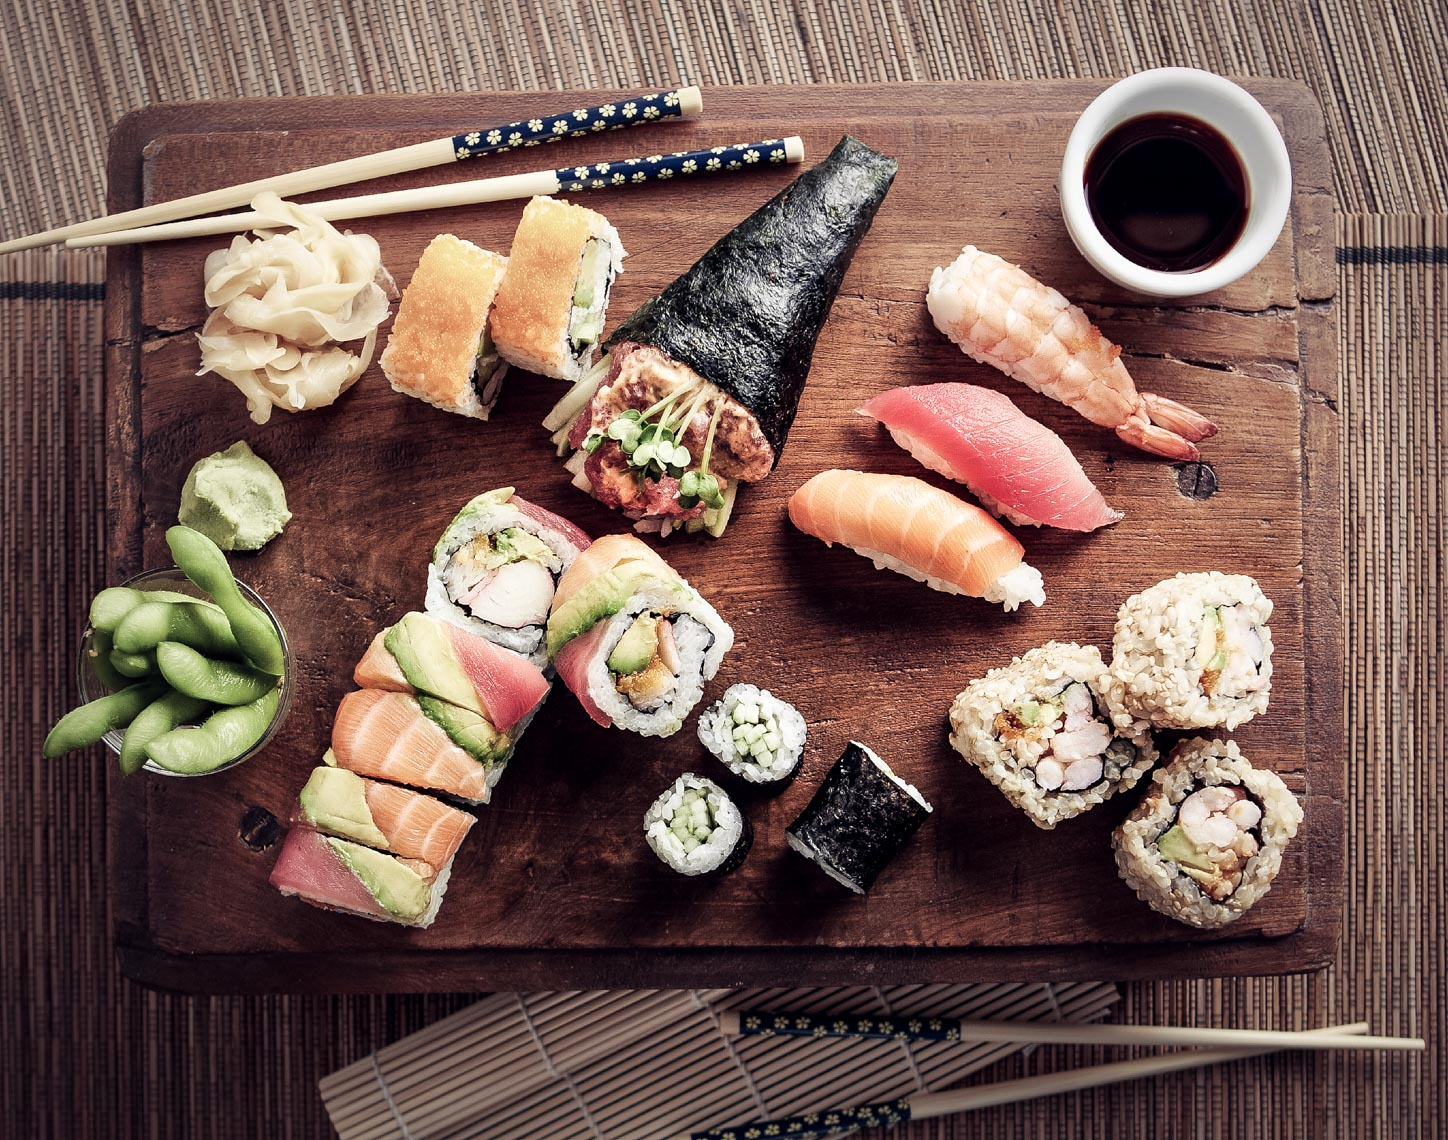 fresh sushi and sushi rolls with edamame and chopsticks on wooden surface